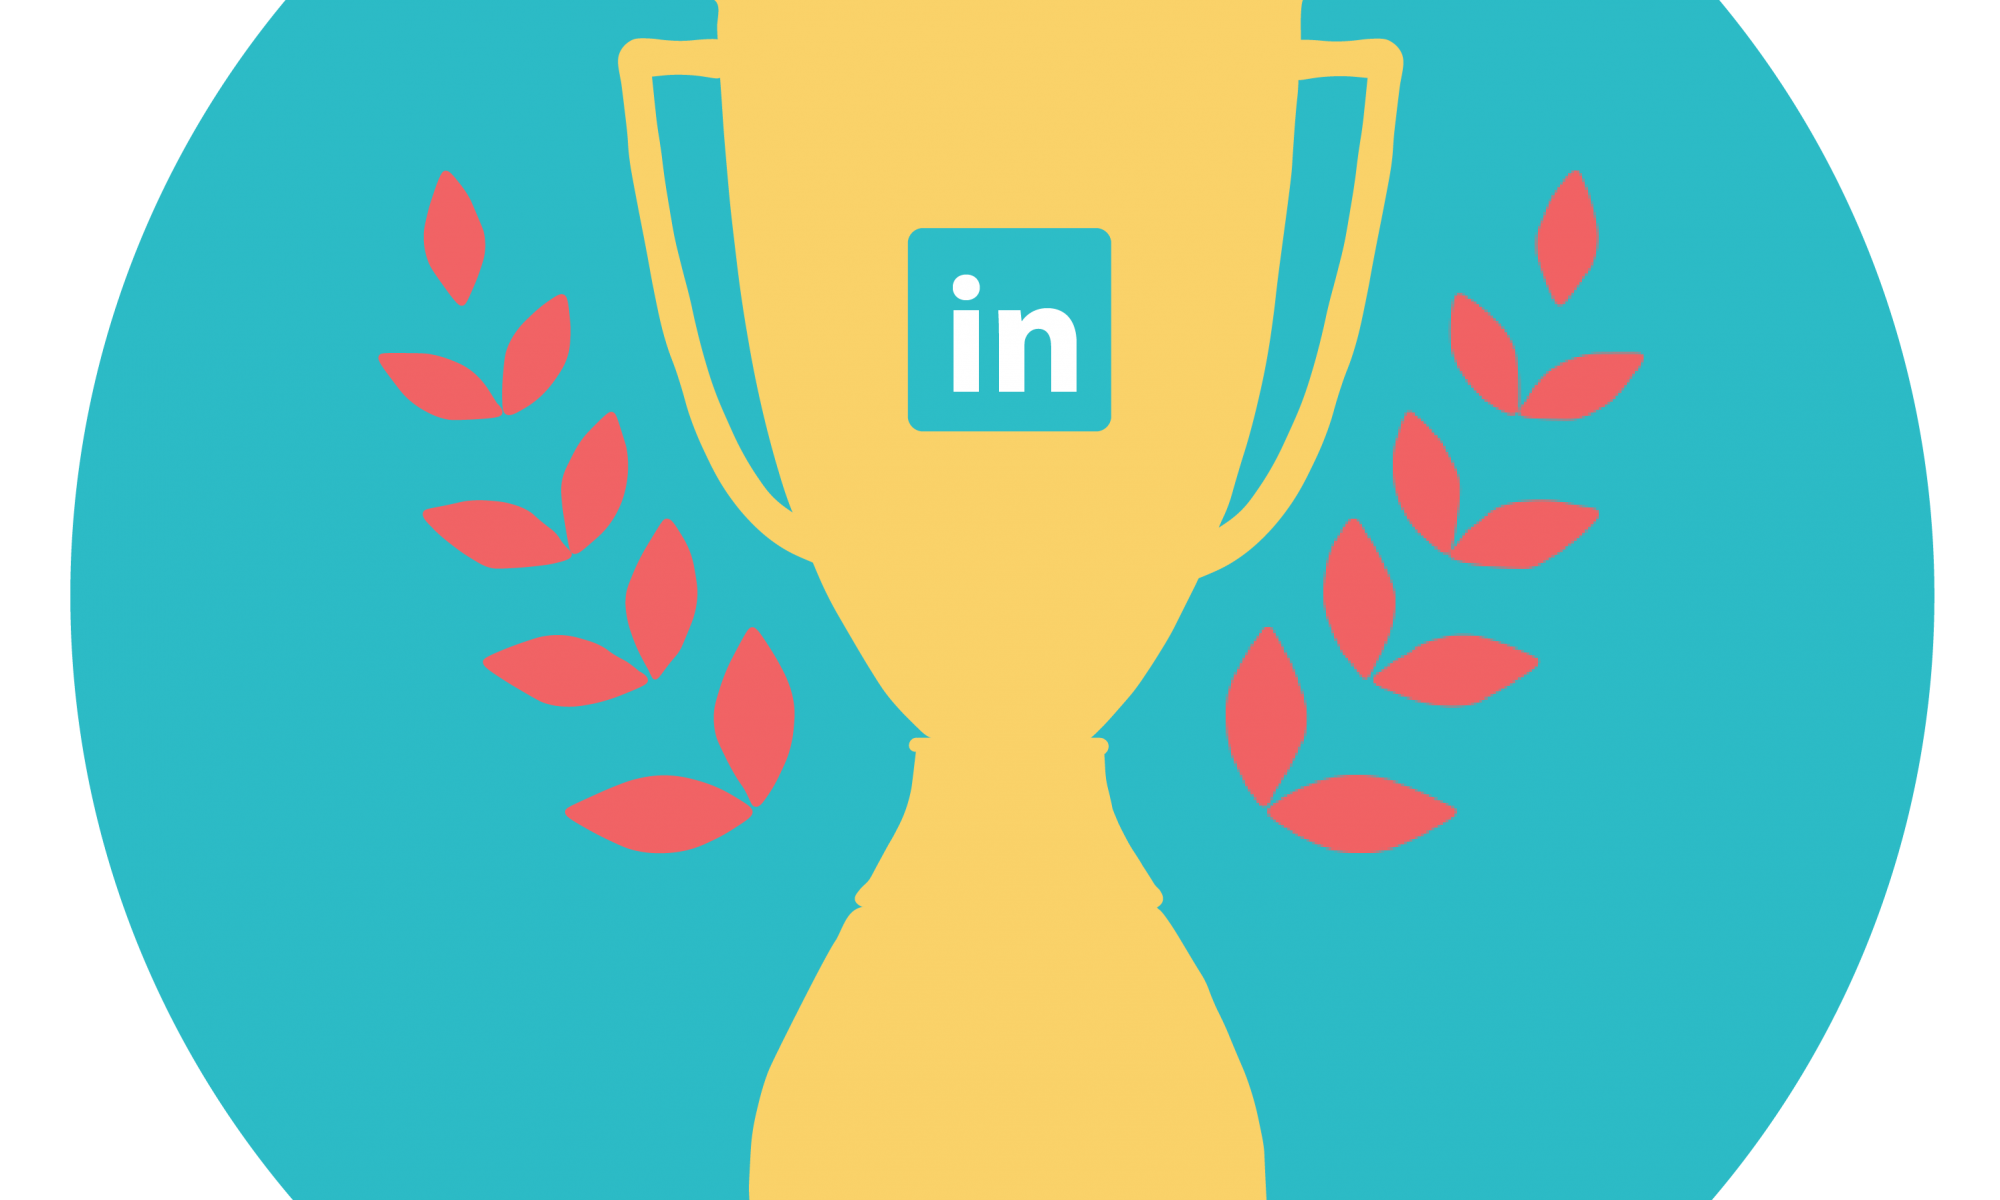 LinkedIn to Win graphic